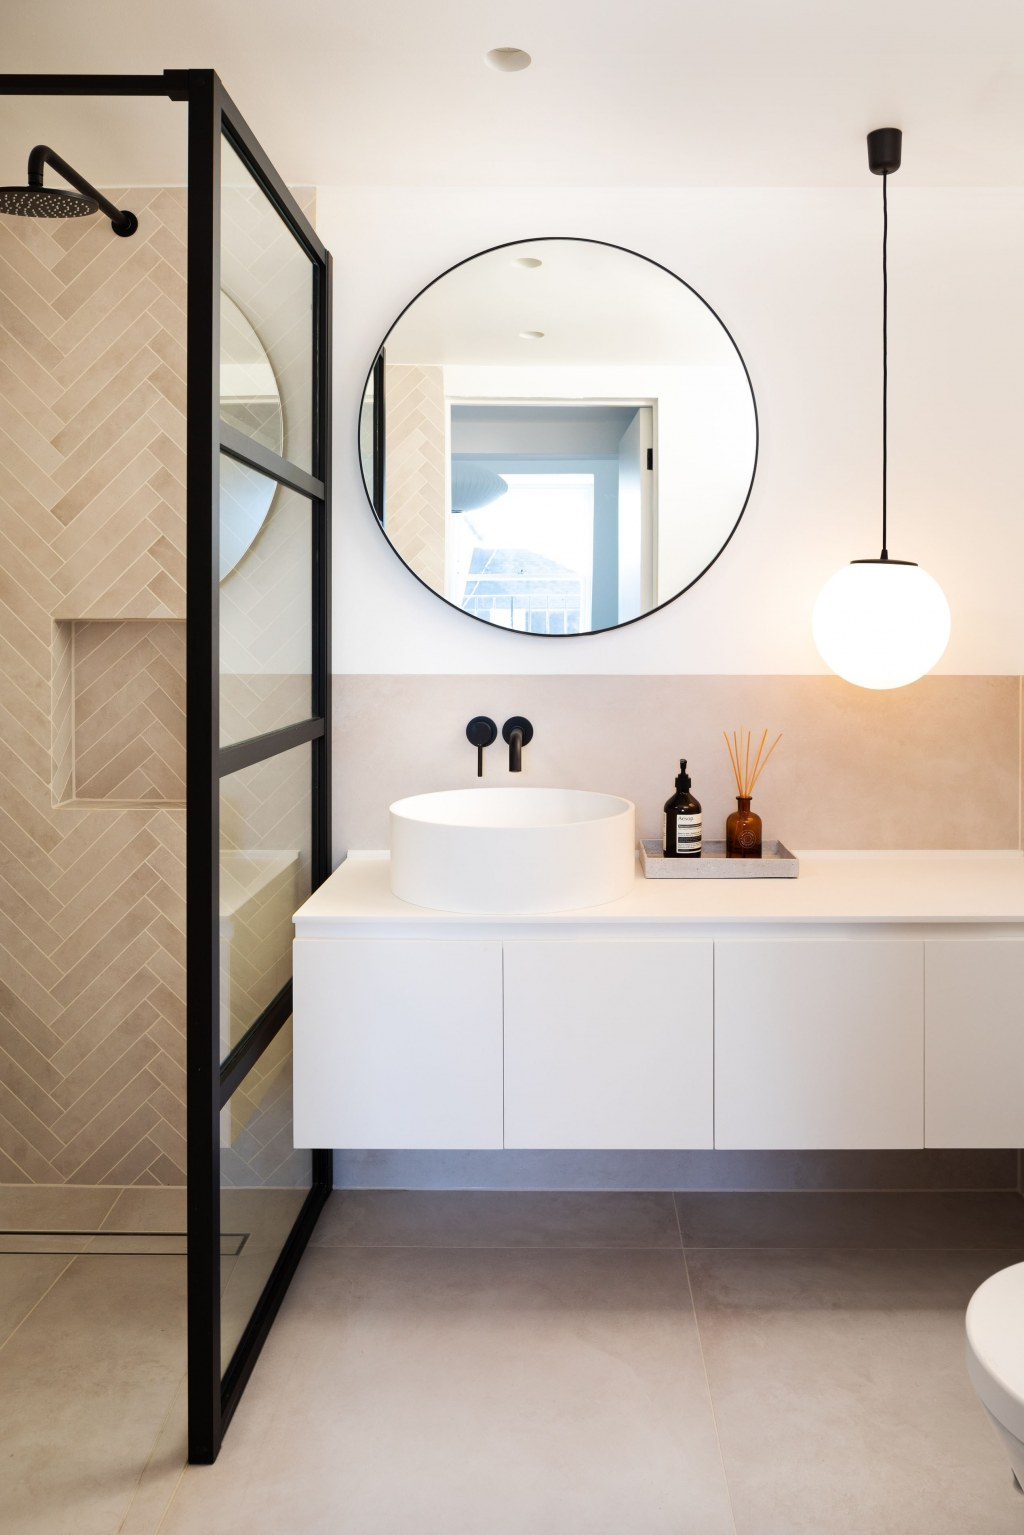 PRIVATE RESIDENCE - MAIDA VALE / Master bathroom